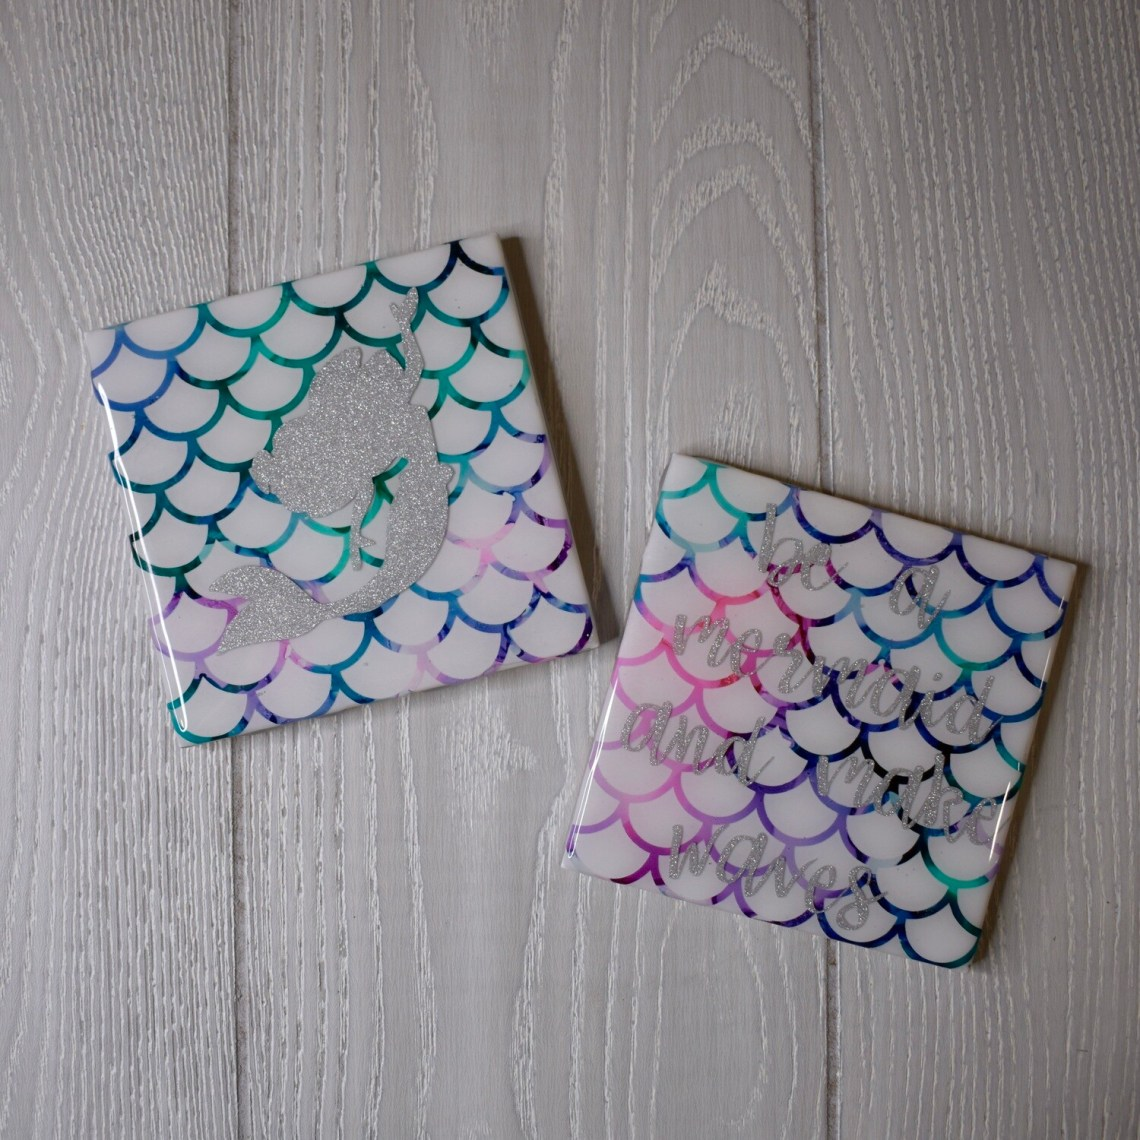 Be a Mermaid and Make Waves - Coasters